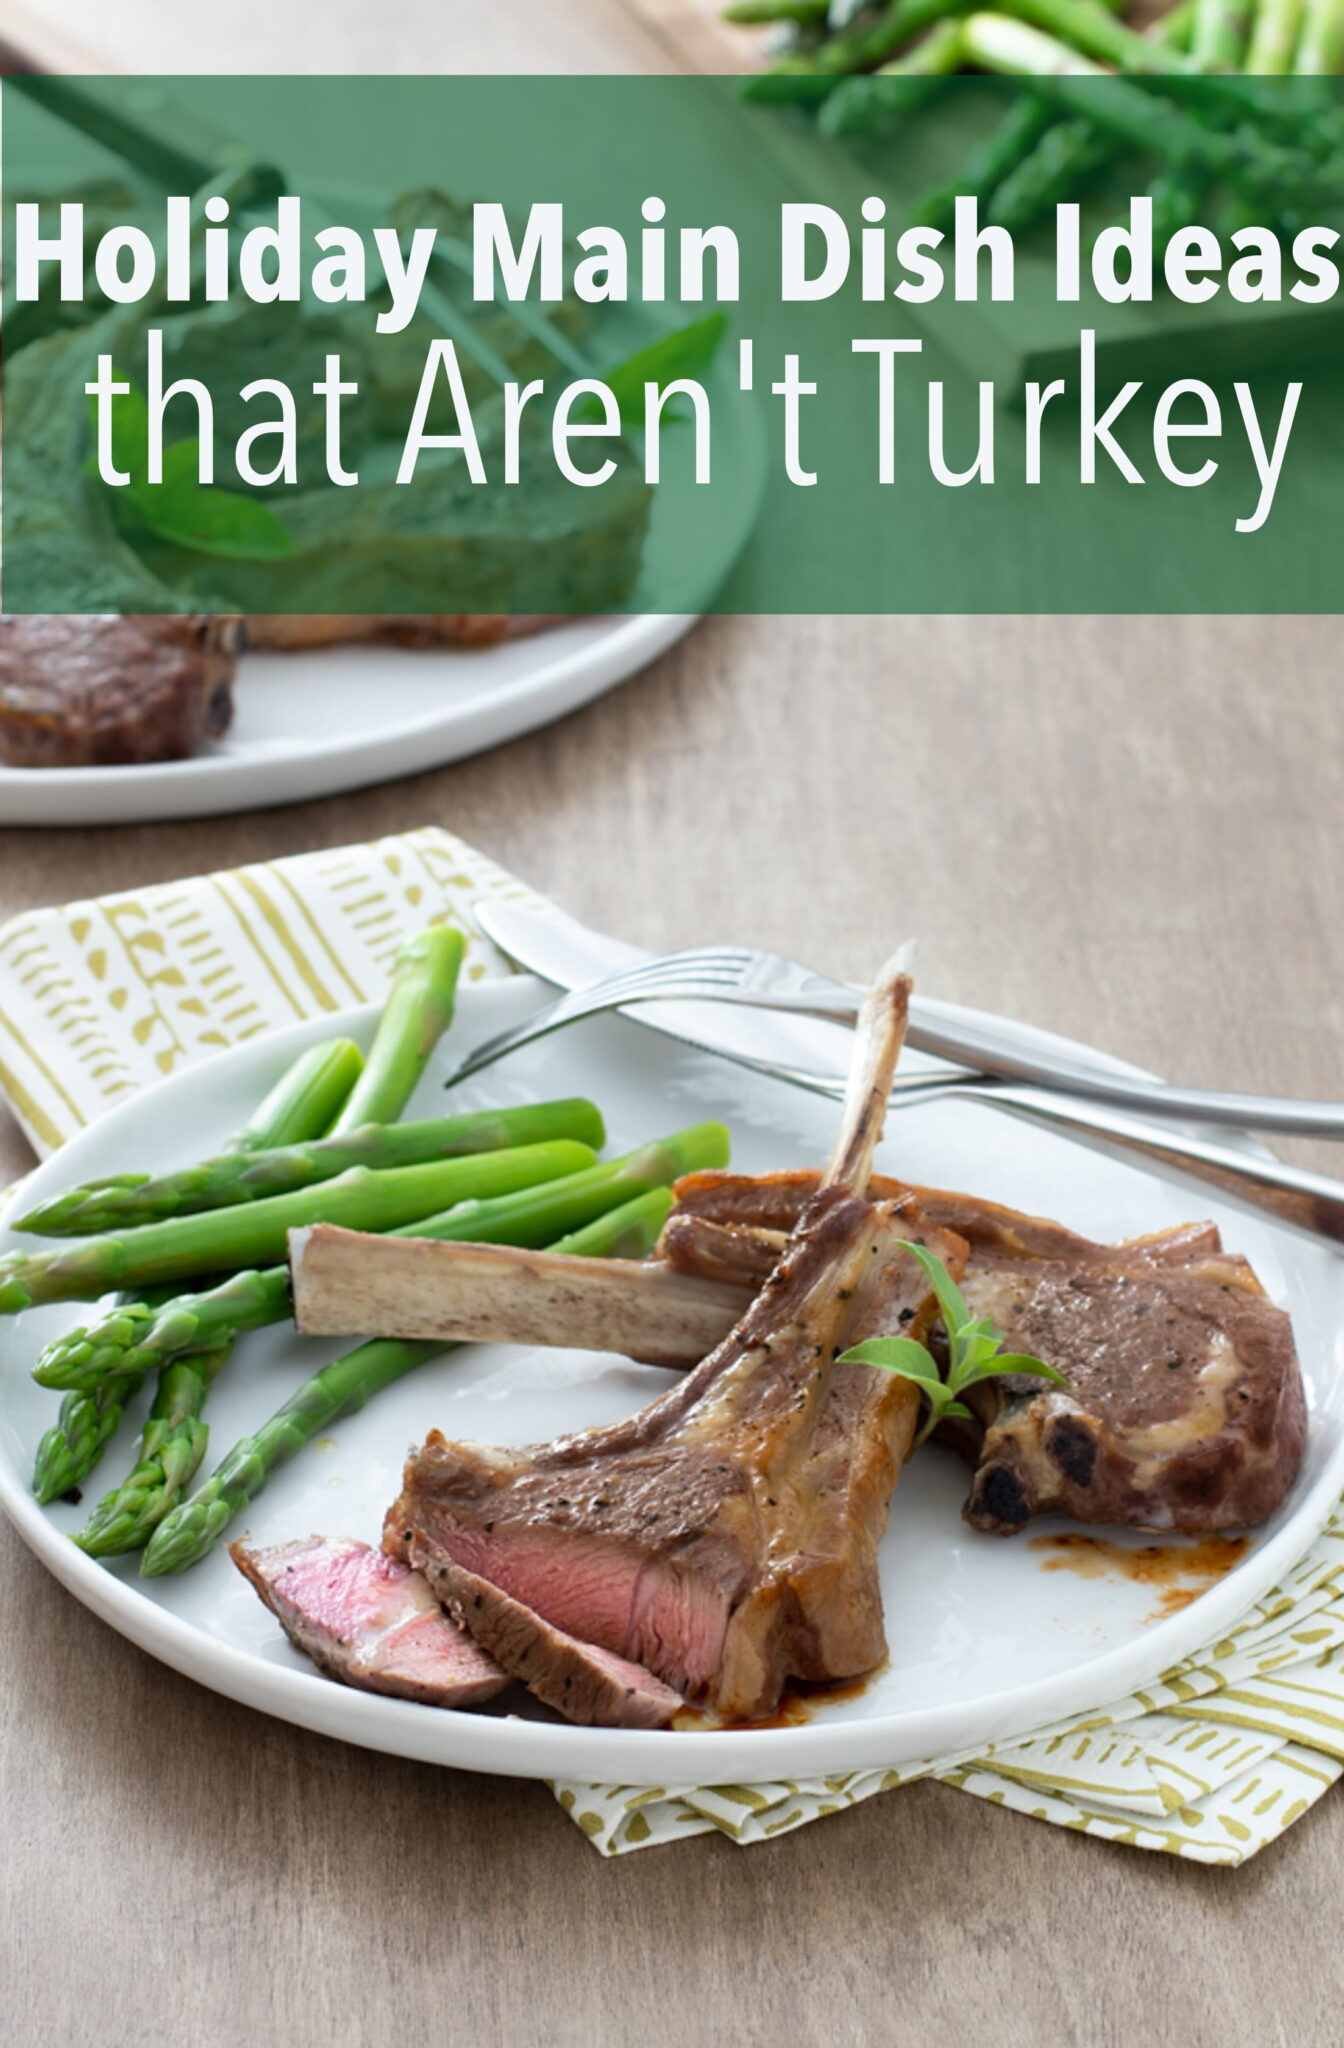 Make something that your guests will drool over this Holiday season.  These meaty main dishrecipes certainlyaren\'t dry turkey, and they\'re impressive and easy. #ham #chicken #lamb #shrimp #maindish #dinner #dinnerrecipe #thanksgiving #christmas